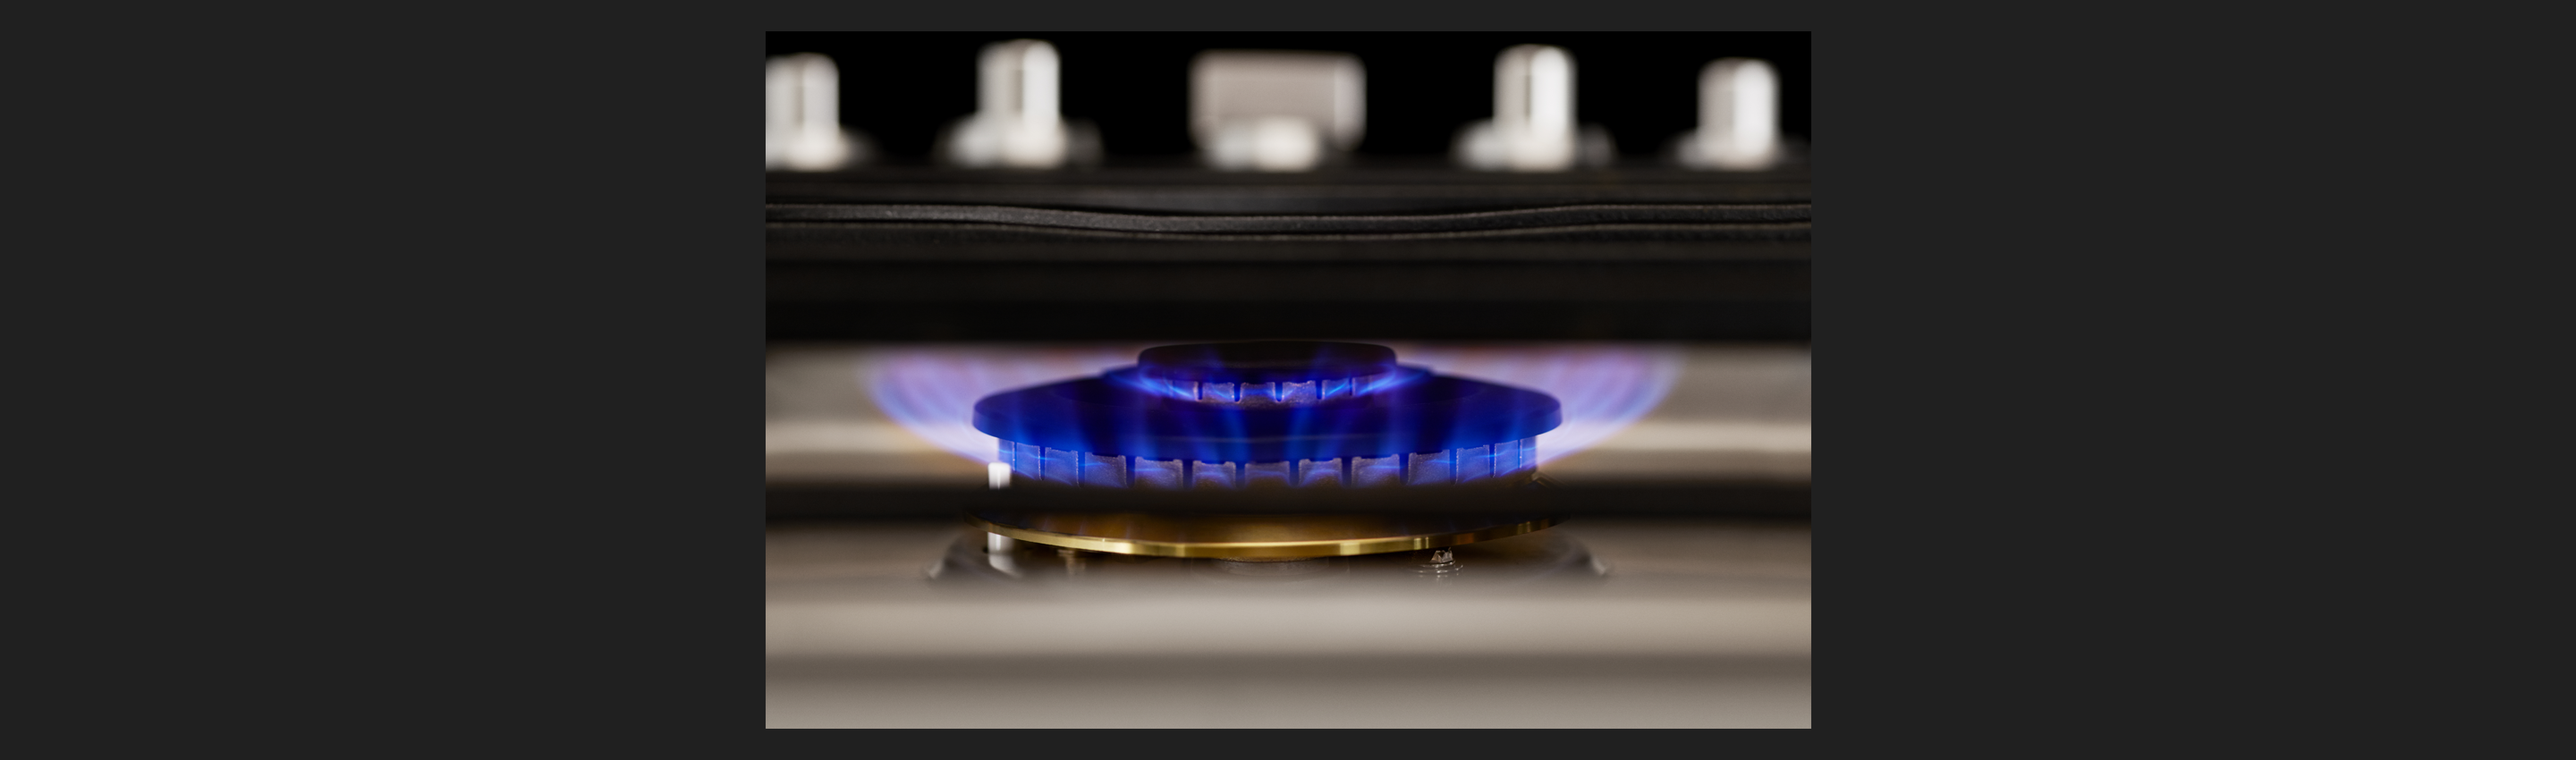 "30"" Gas Cooktop with RapidHeat™ Burner"